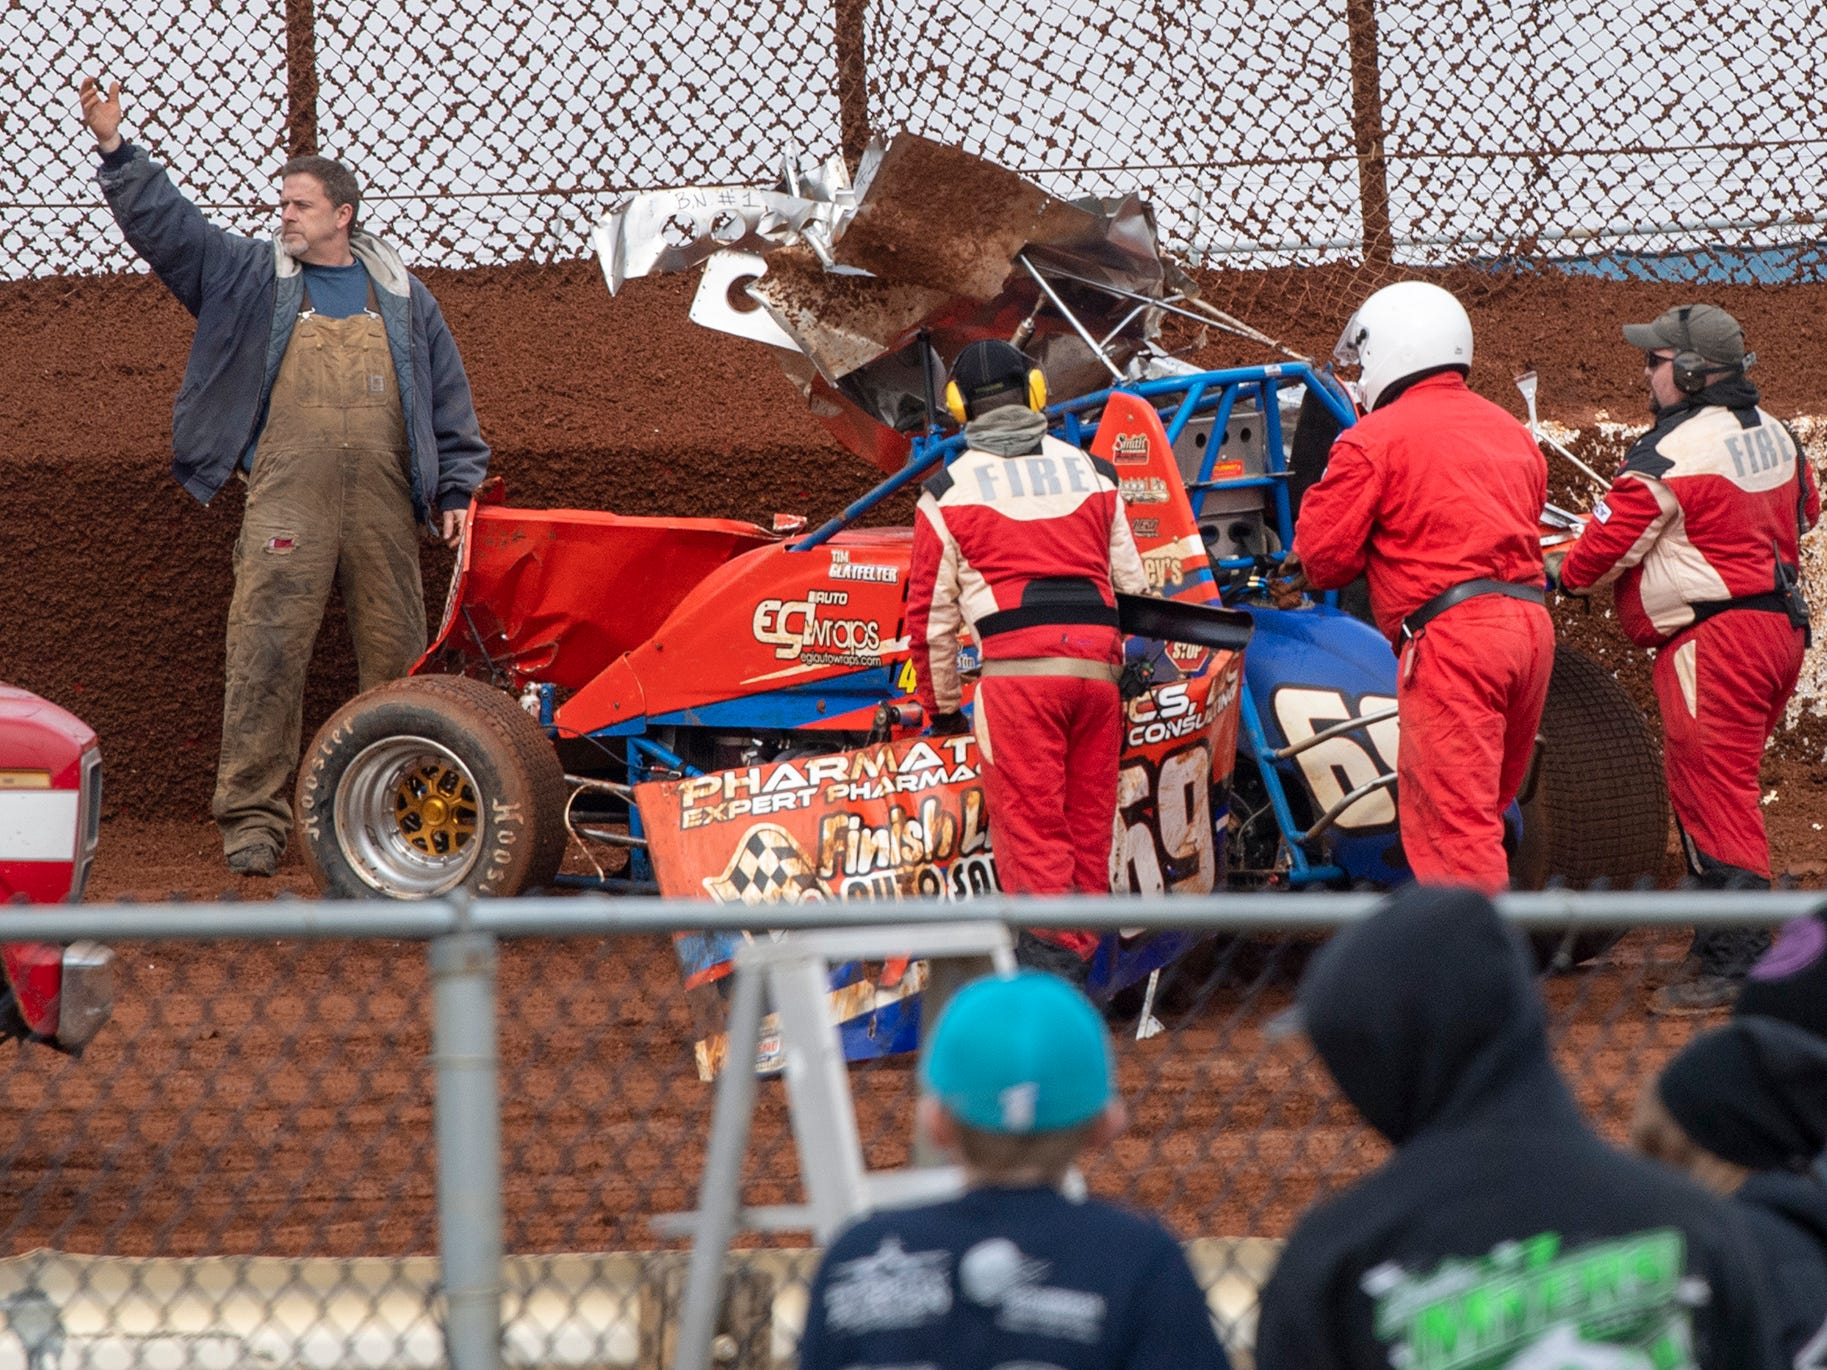 The 69 car driven by Tim Glatfelter is taken away during a crash in the second turn during the final laps of the Lincoln Speedway Ice Breaker 30 on Sunday near Abbottstown.